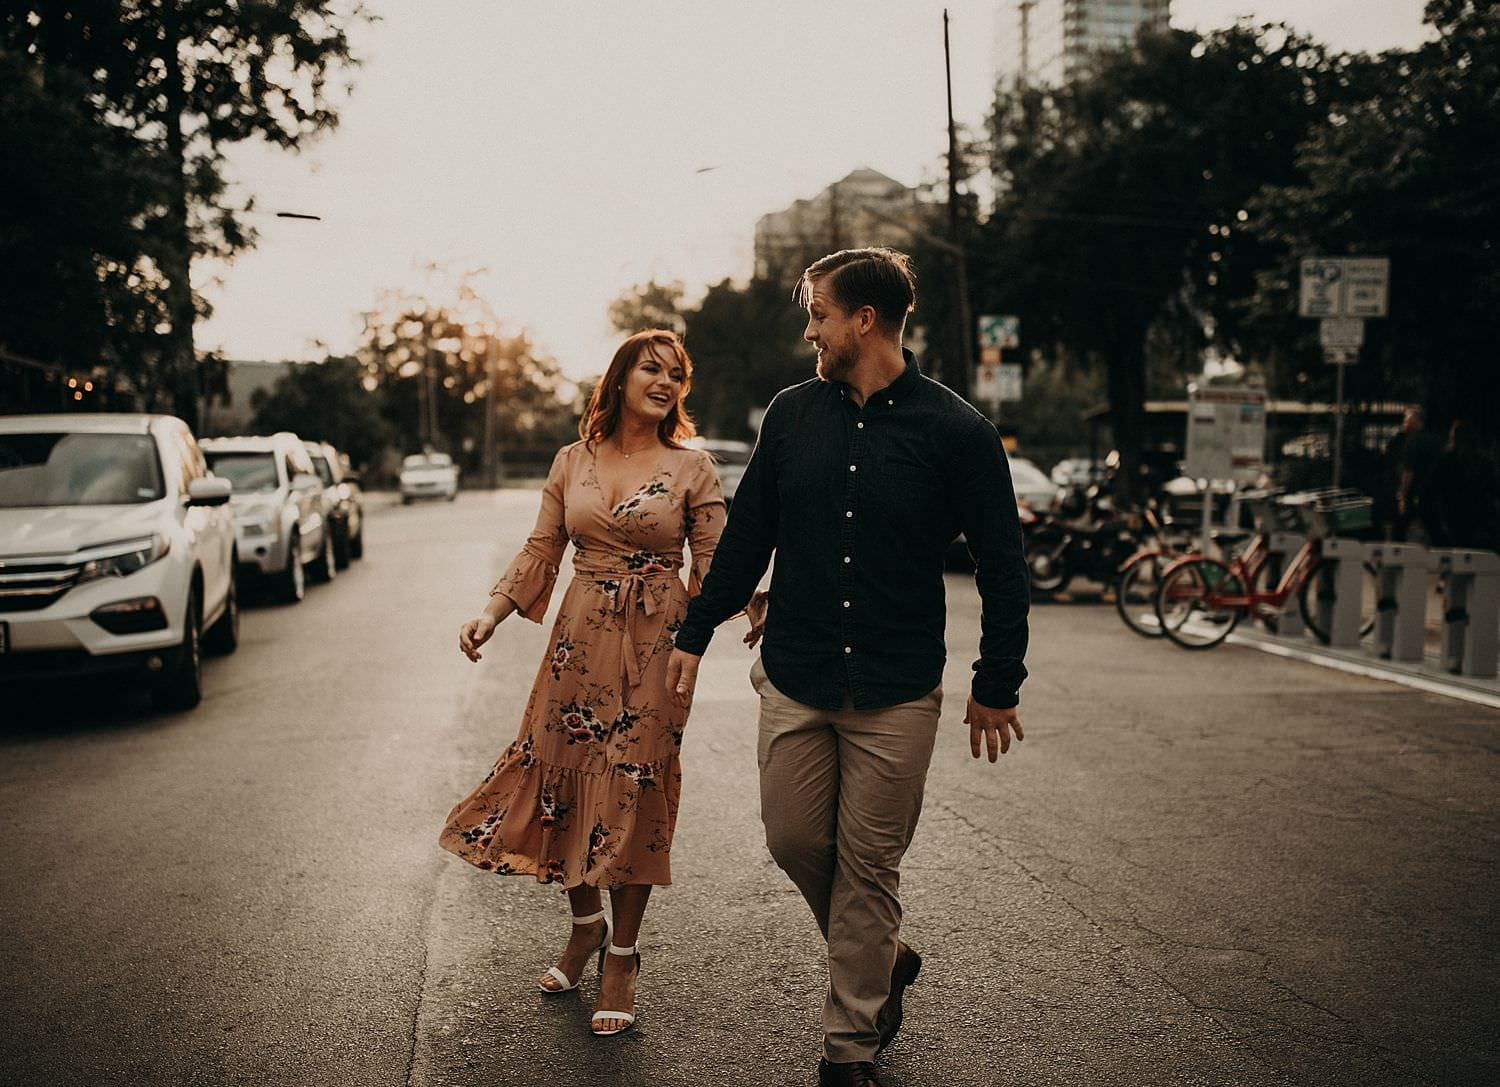 Heather & Alex's Rainey Street Bar District Engagement Photo Shoot in Austin, Texas